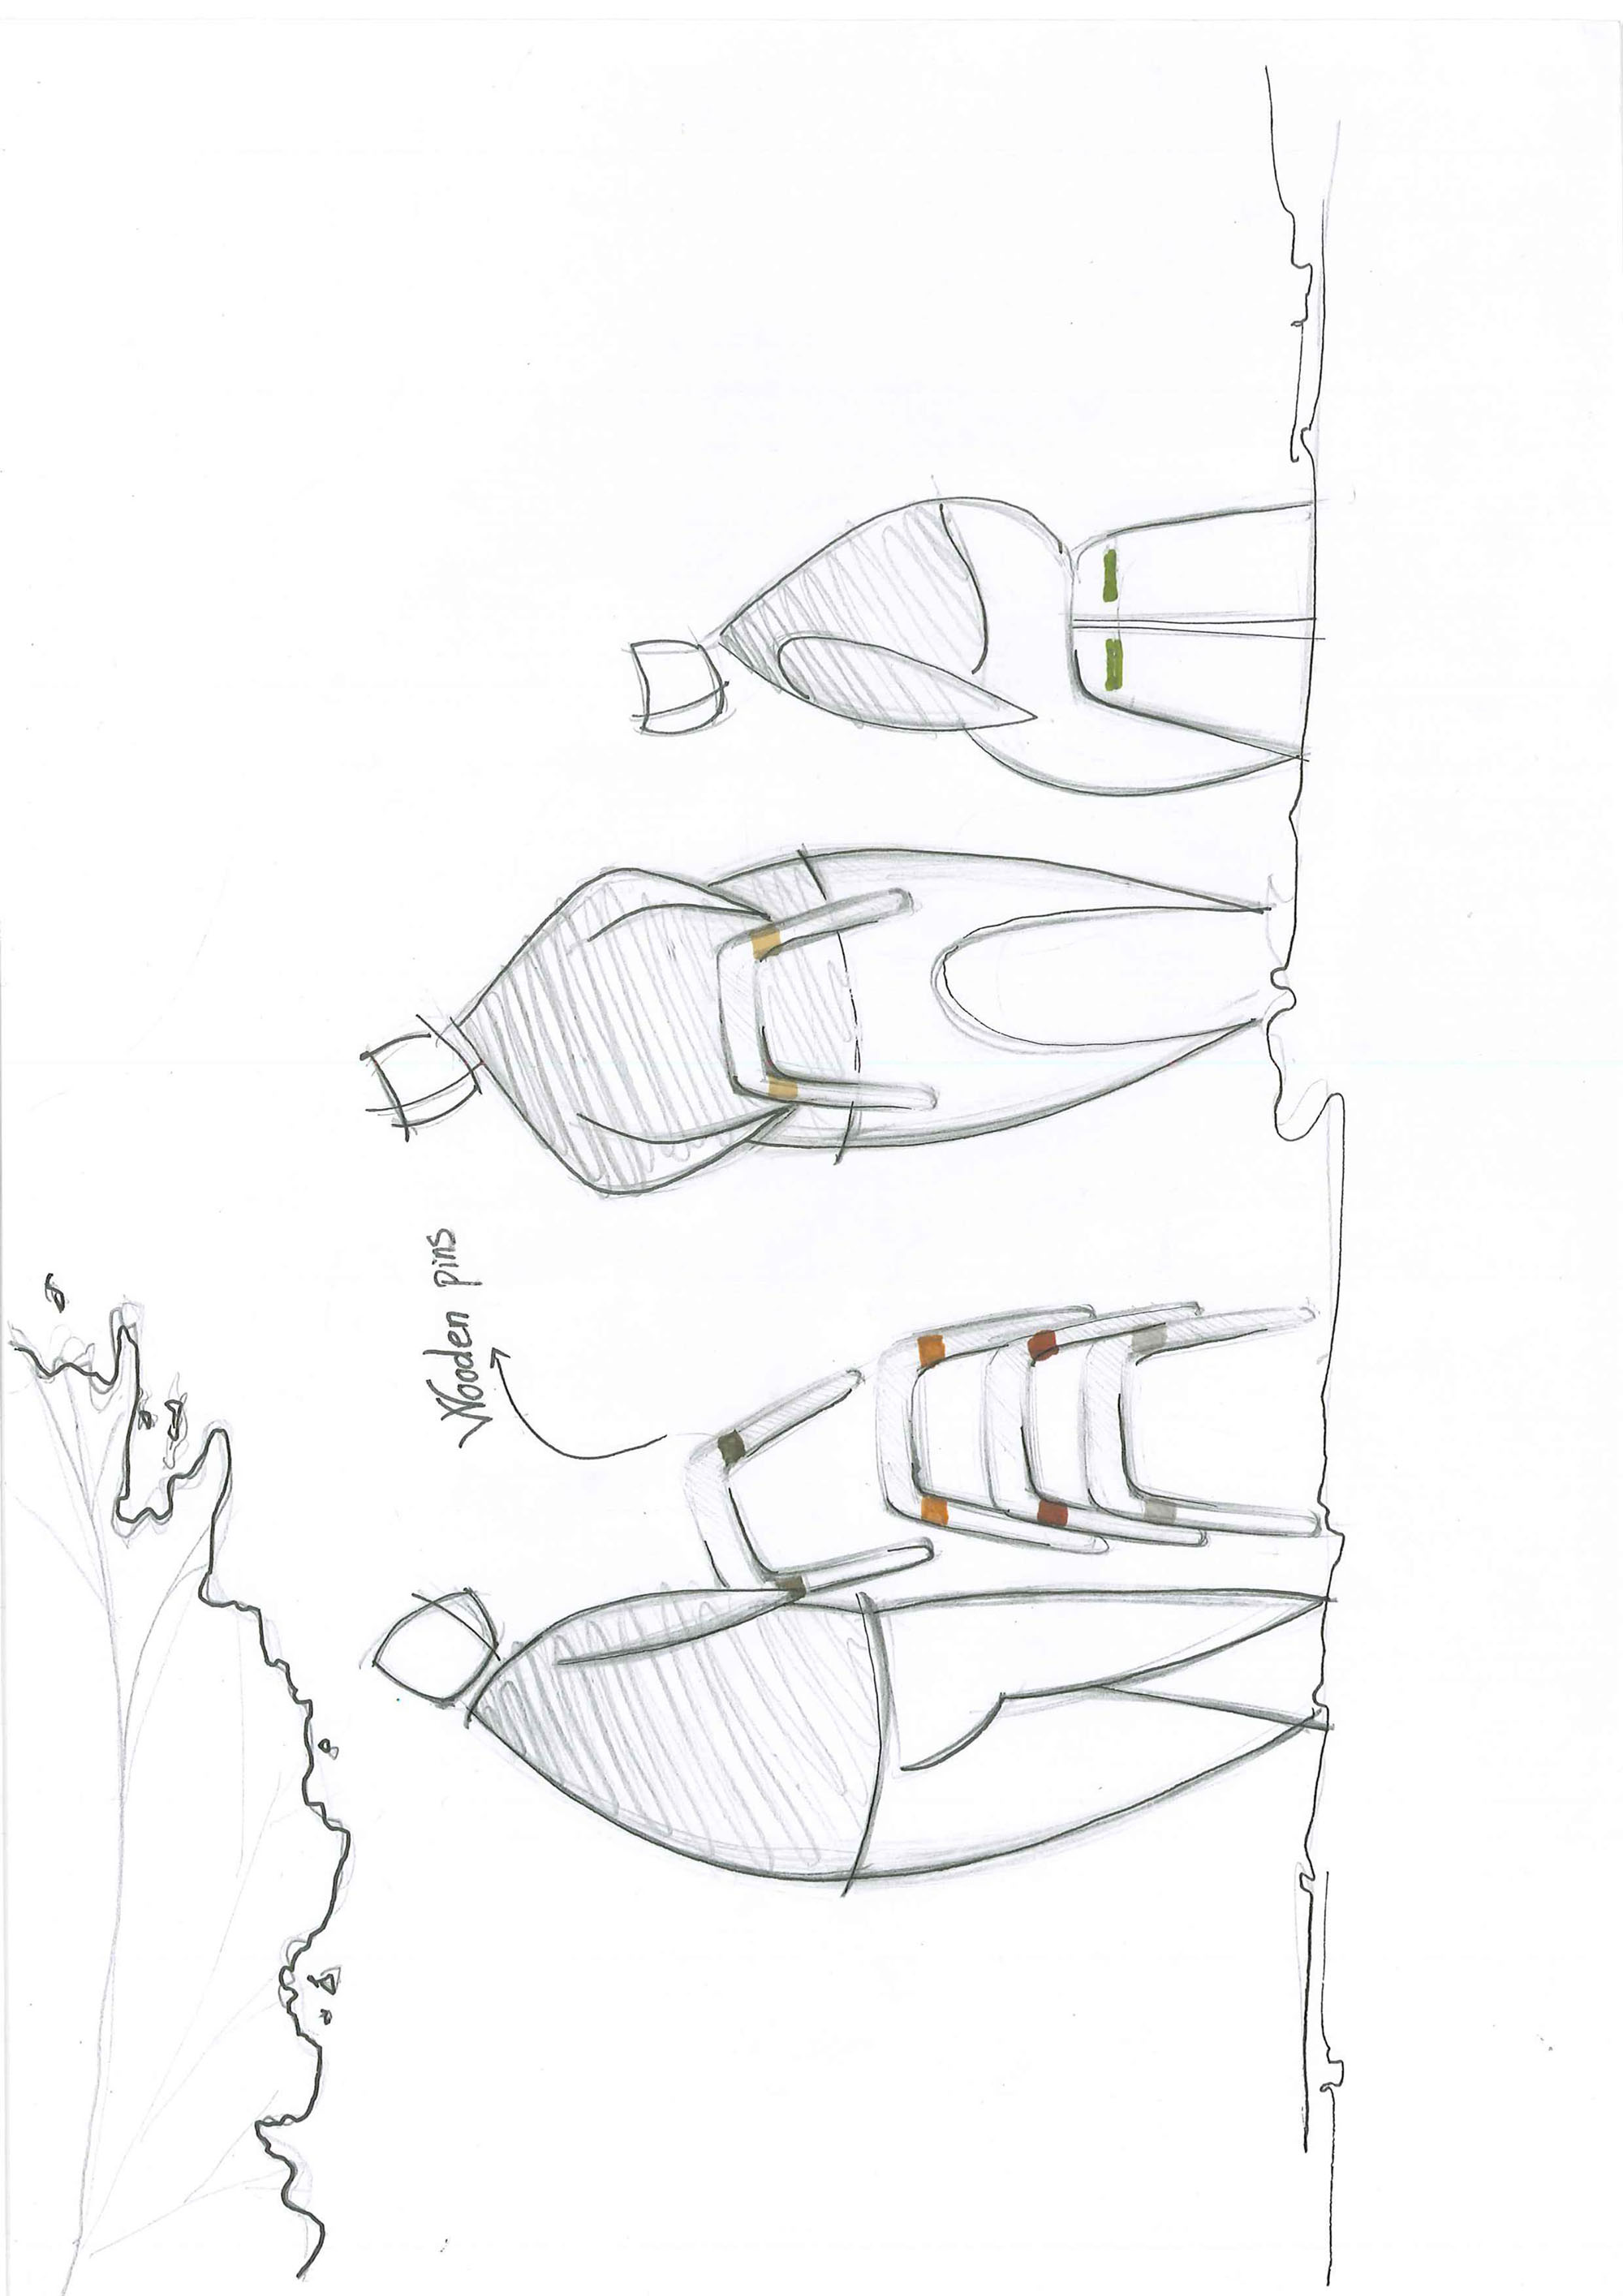 Trang Nguyen_The Roof Stool_Sketches 1